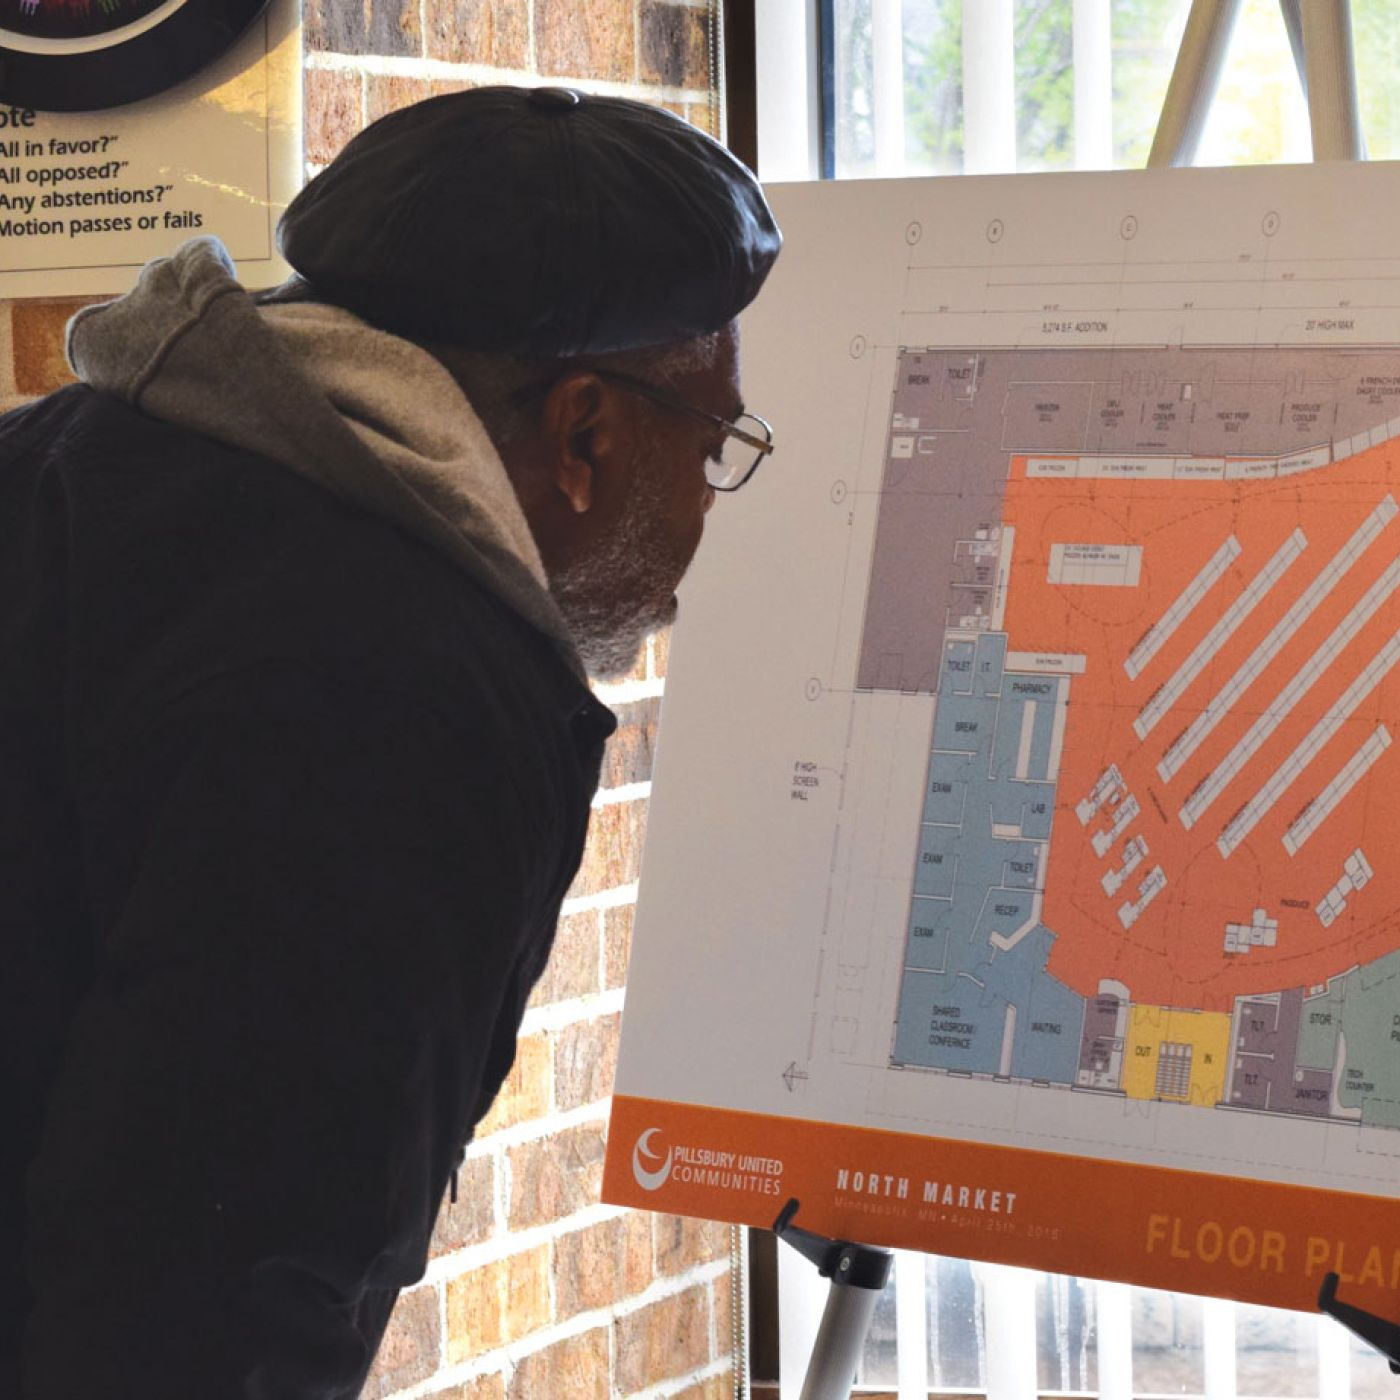 Man reviewing plans for North Market